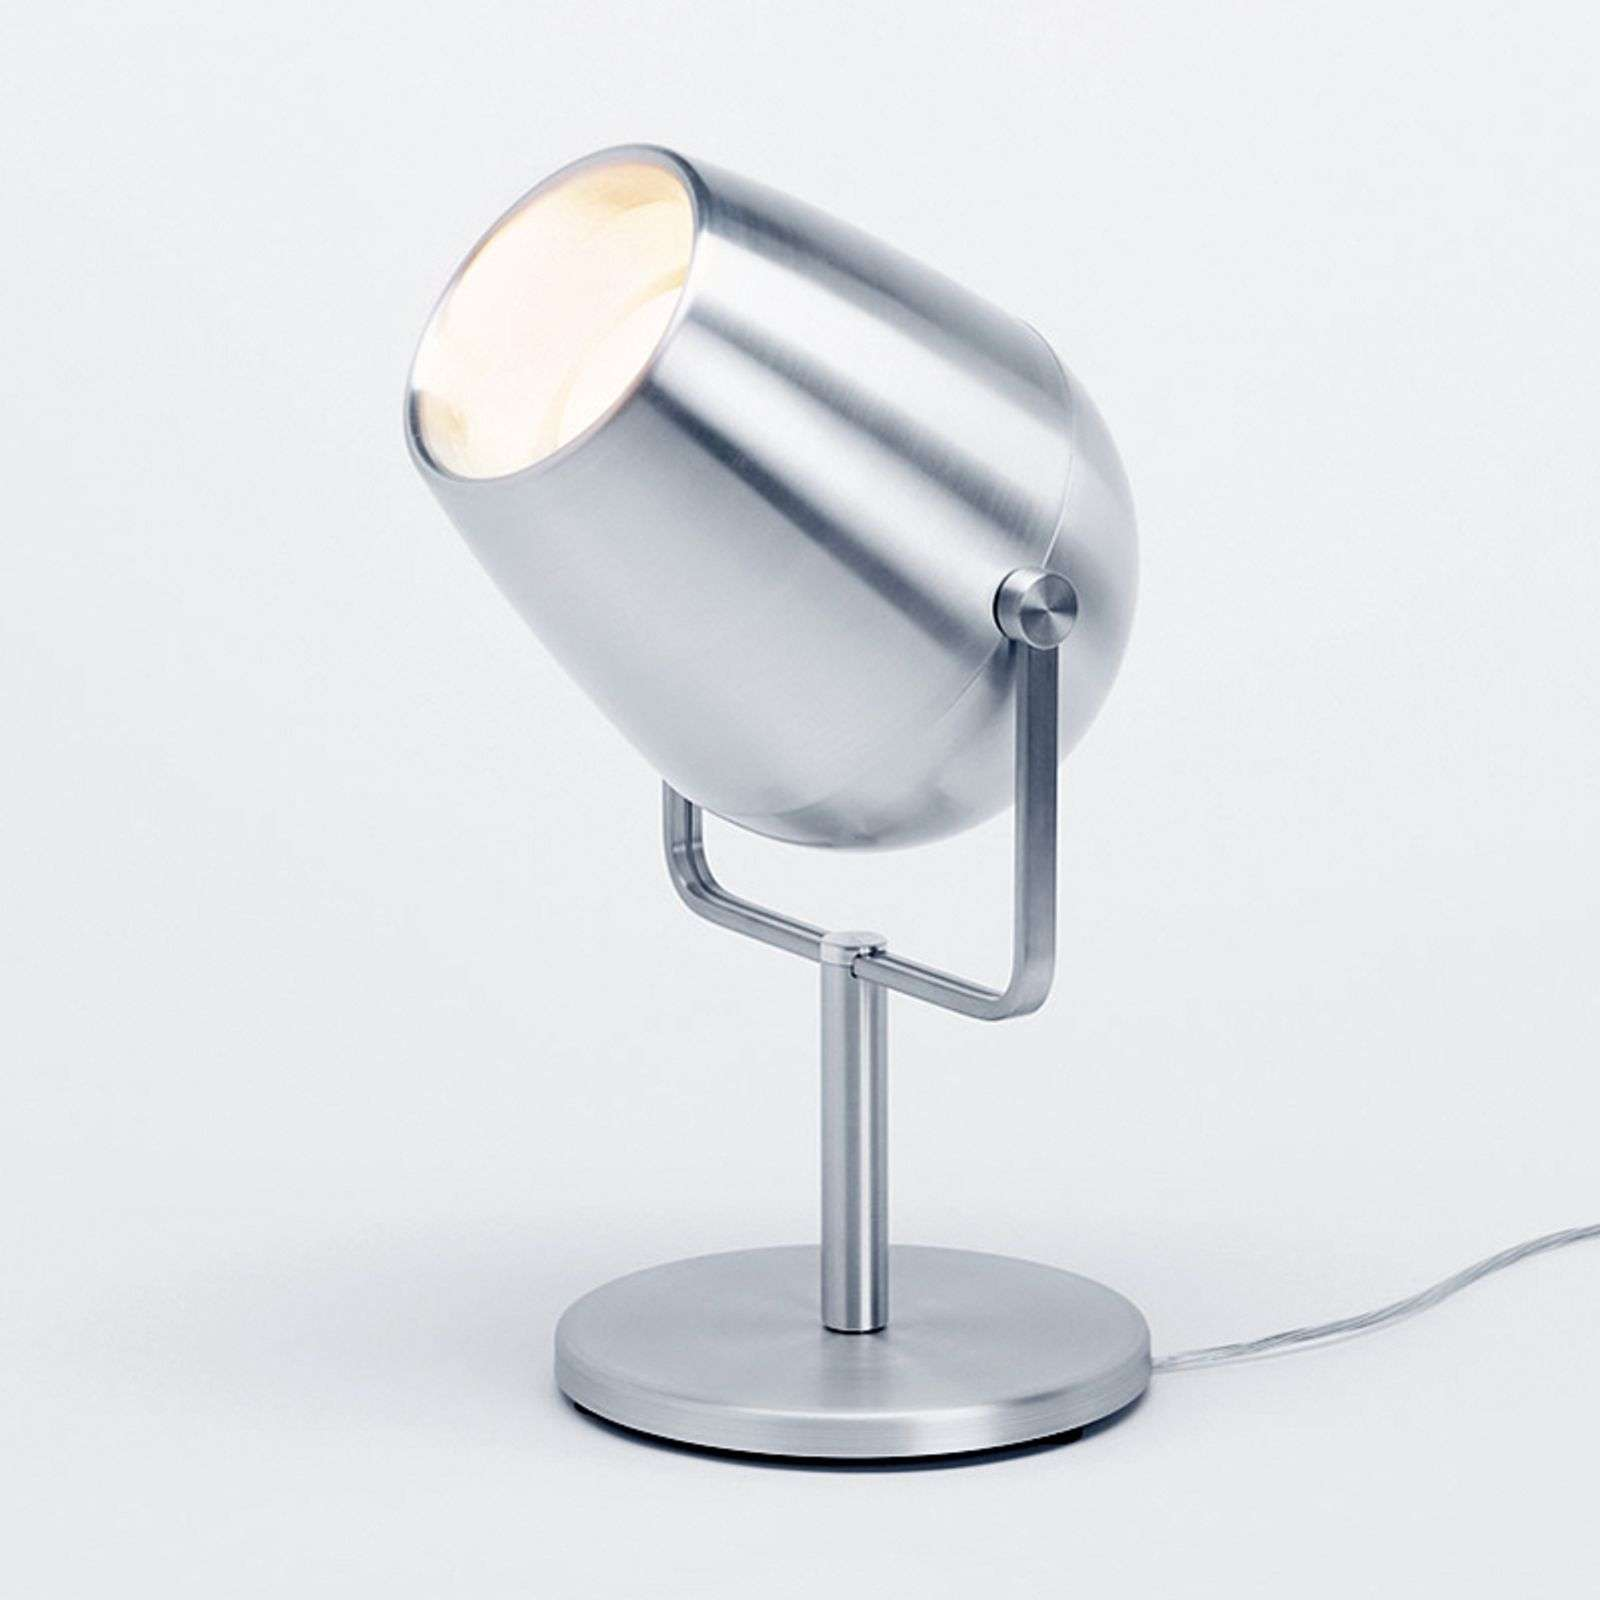 Lampe à poser LED flexible Pan Am avec variateur